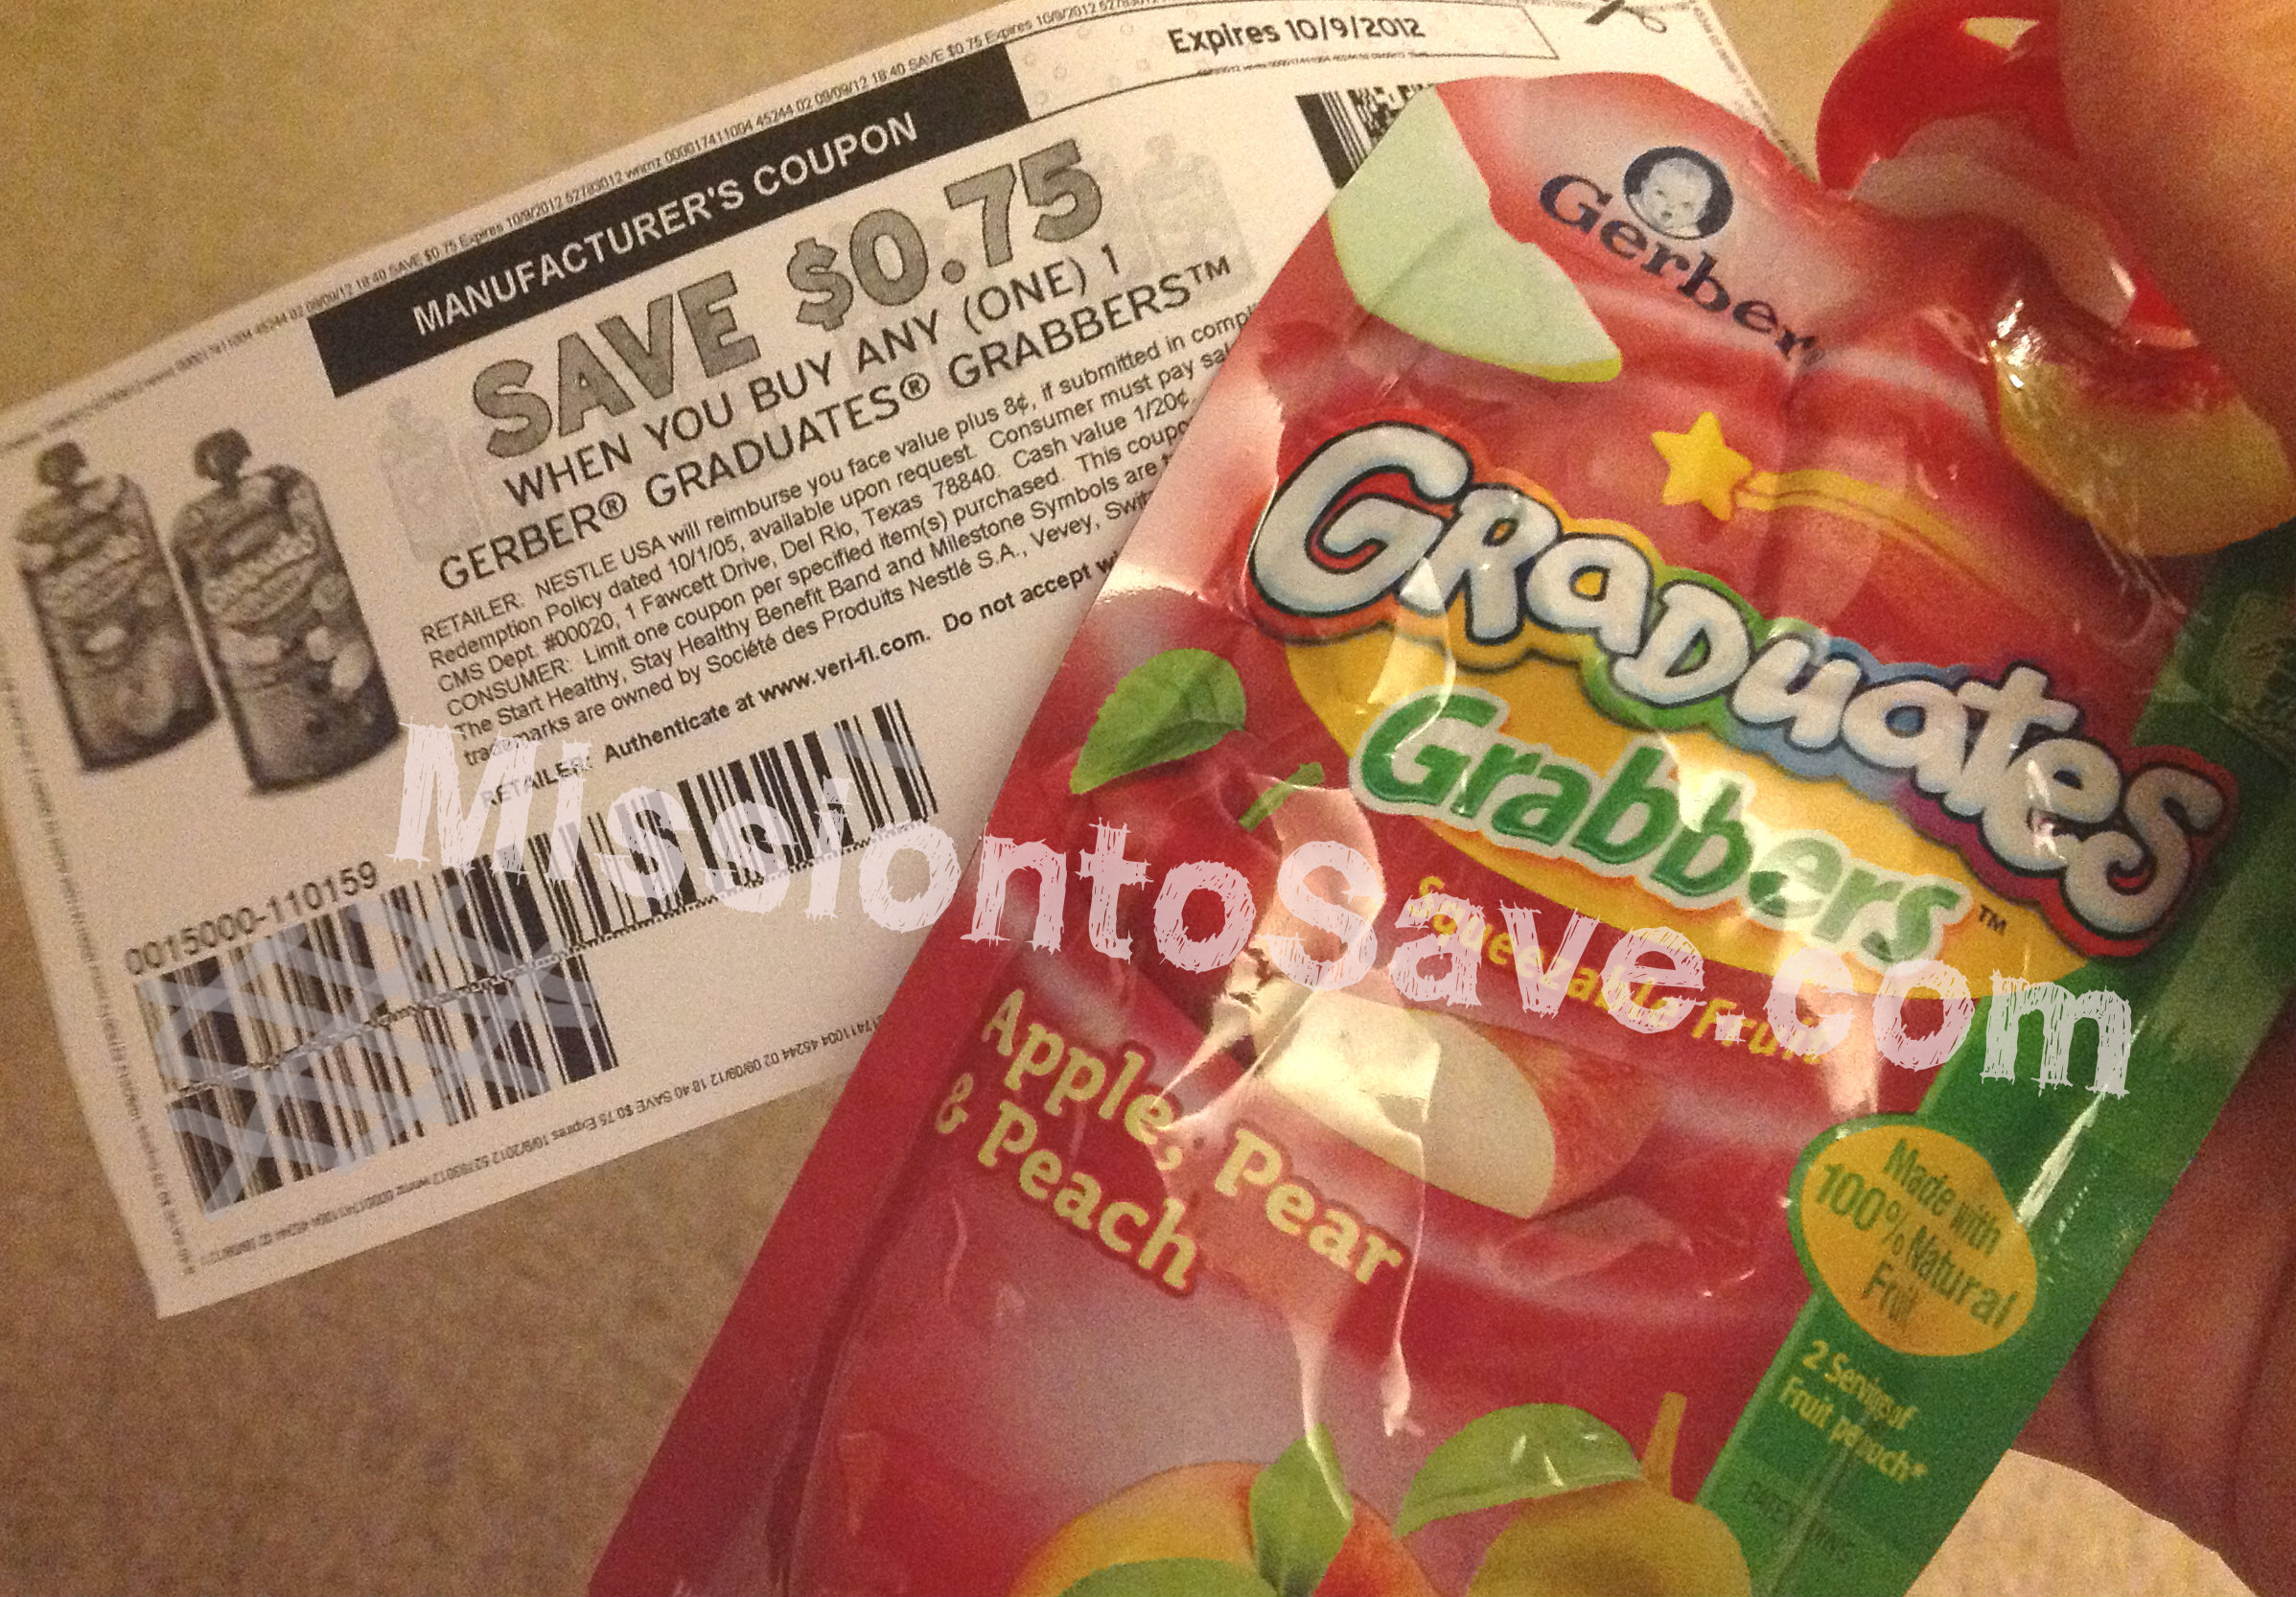 New Gerber Pouches Printable Coupons= Freebies At Giant Eagle - Free Printable Giant Eagle Coupons